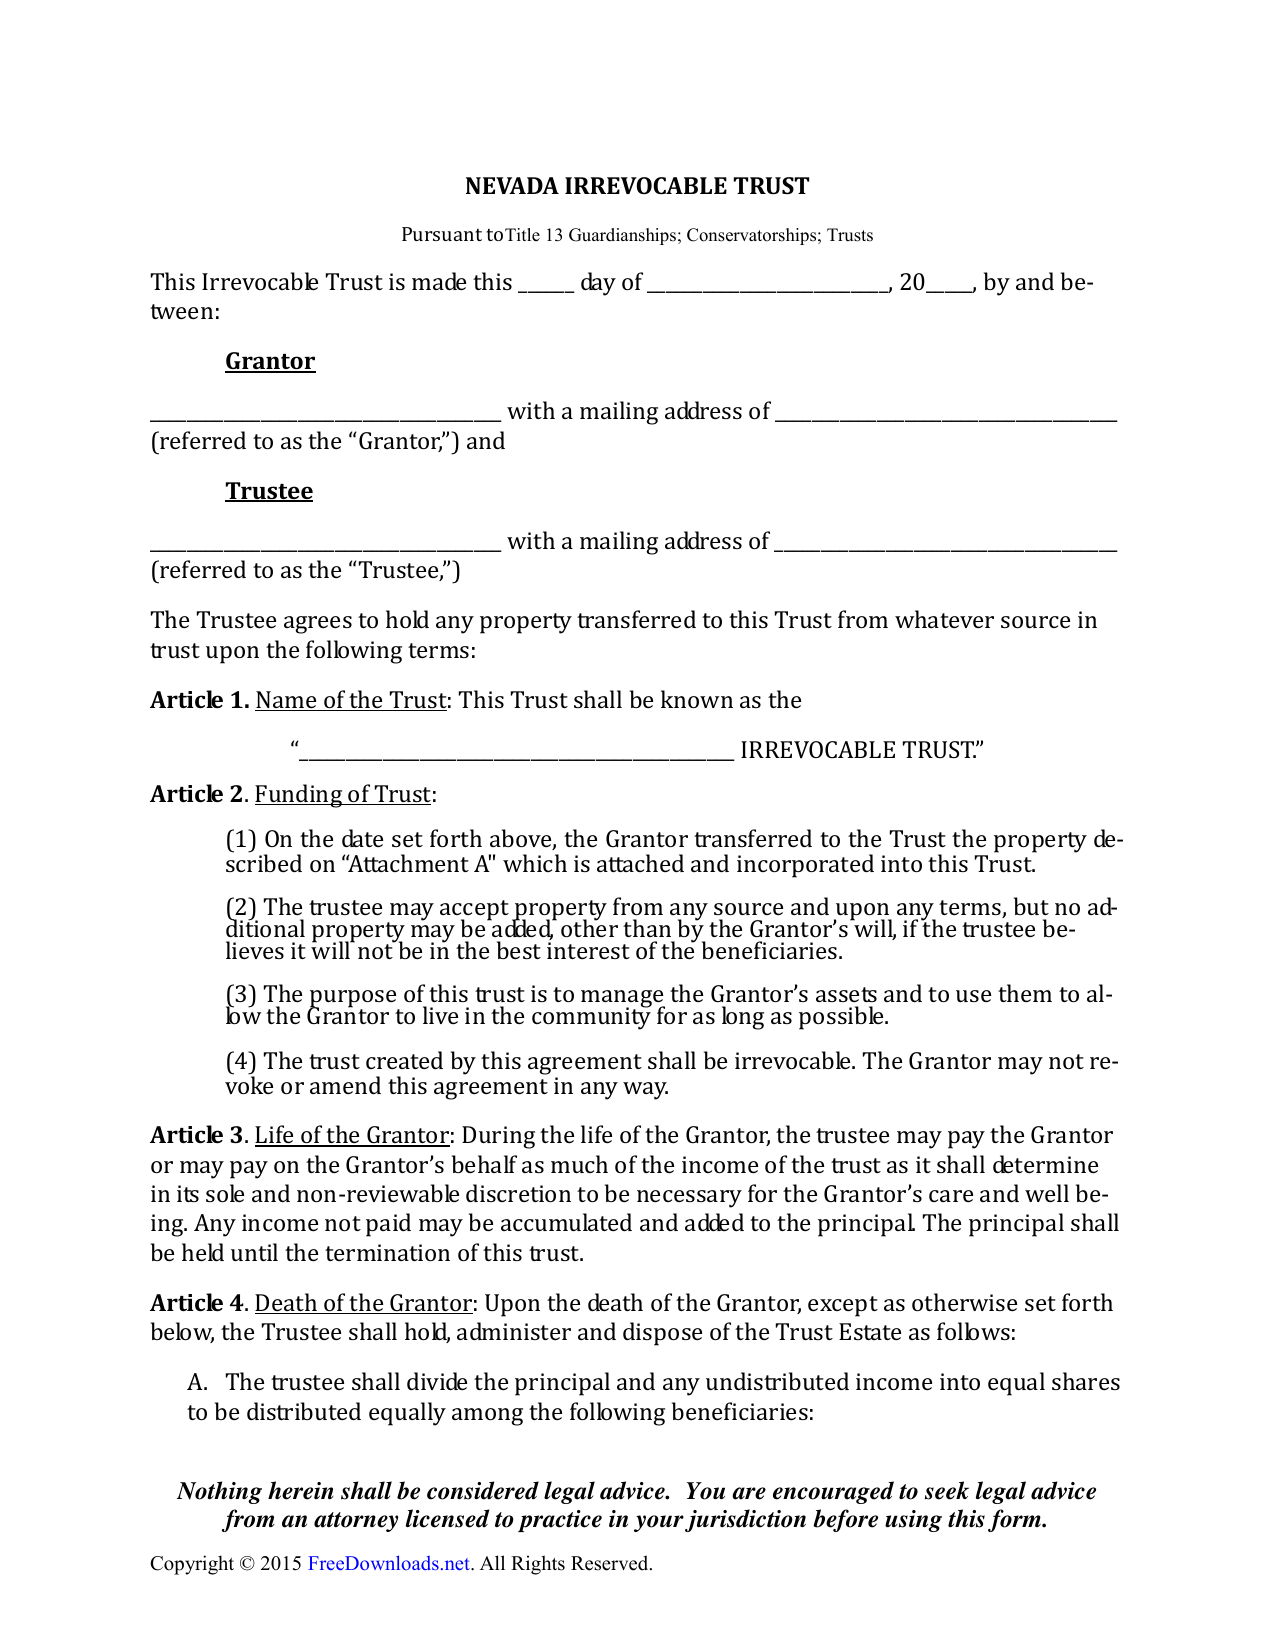 Irrevocable Trust Template Nevada